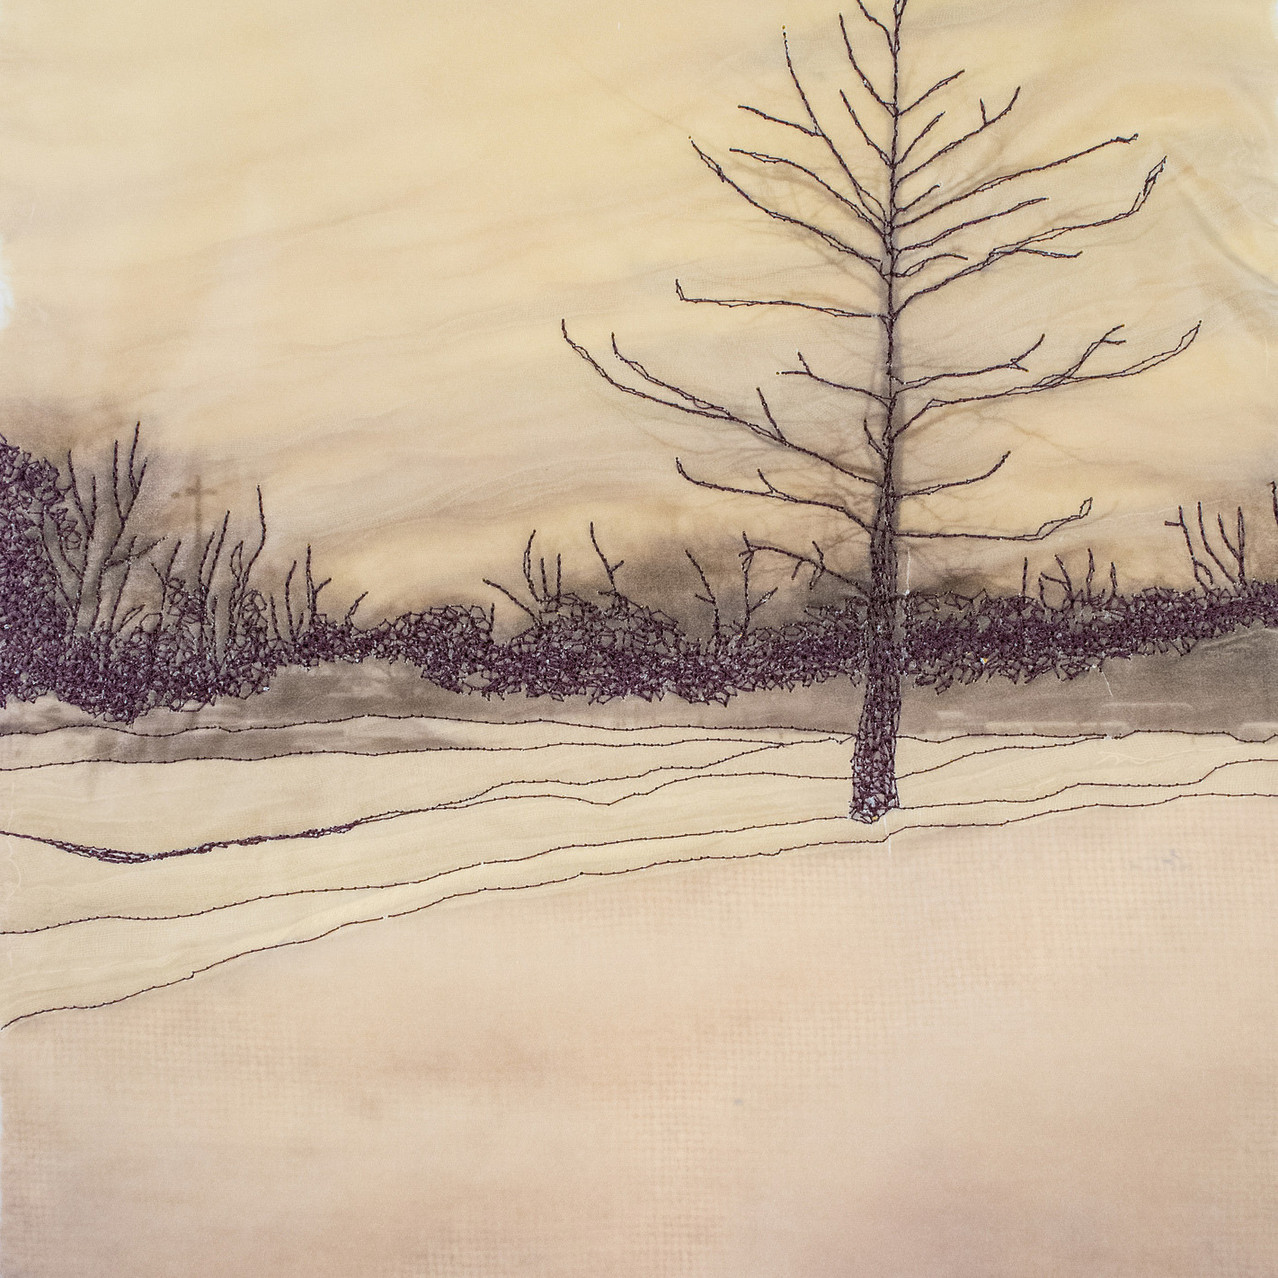 Winter trees (ochre veil)